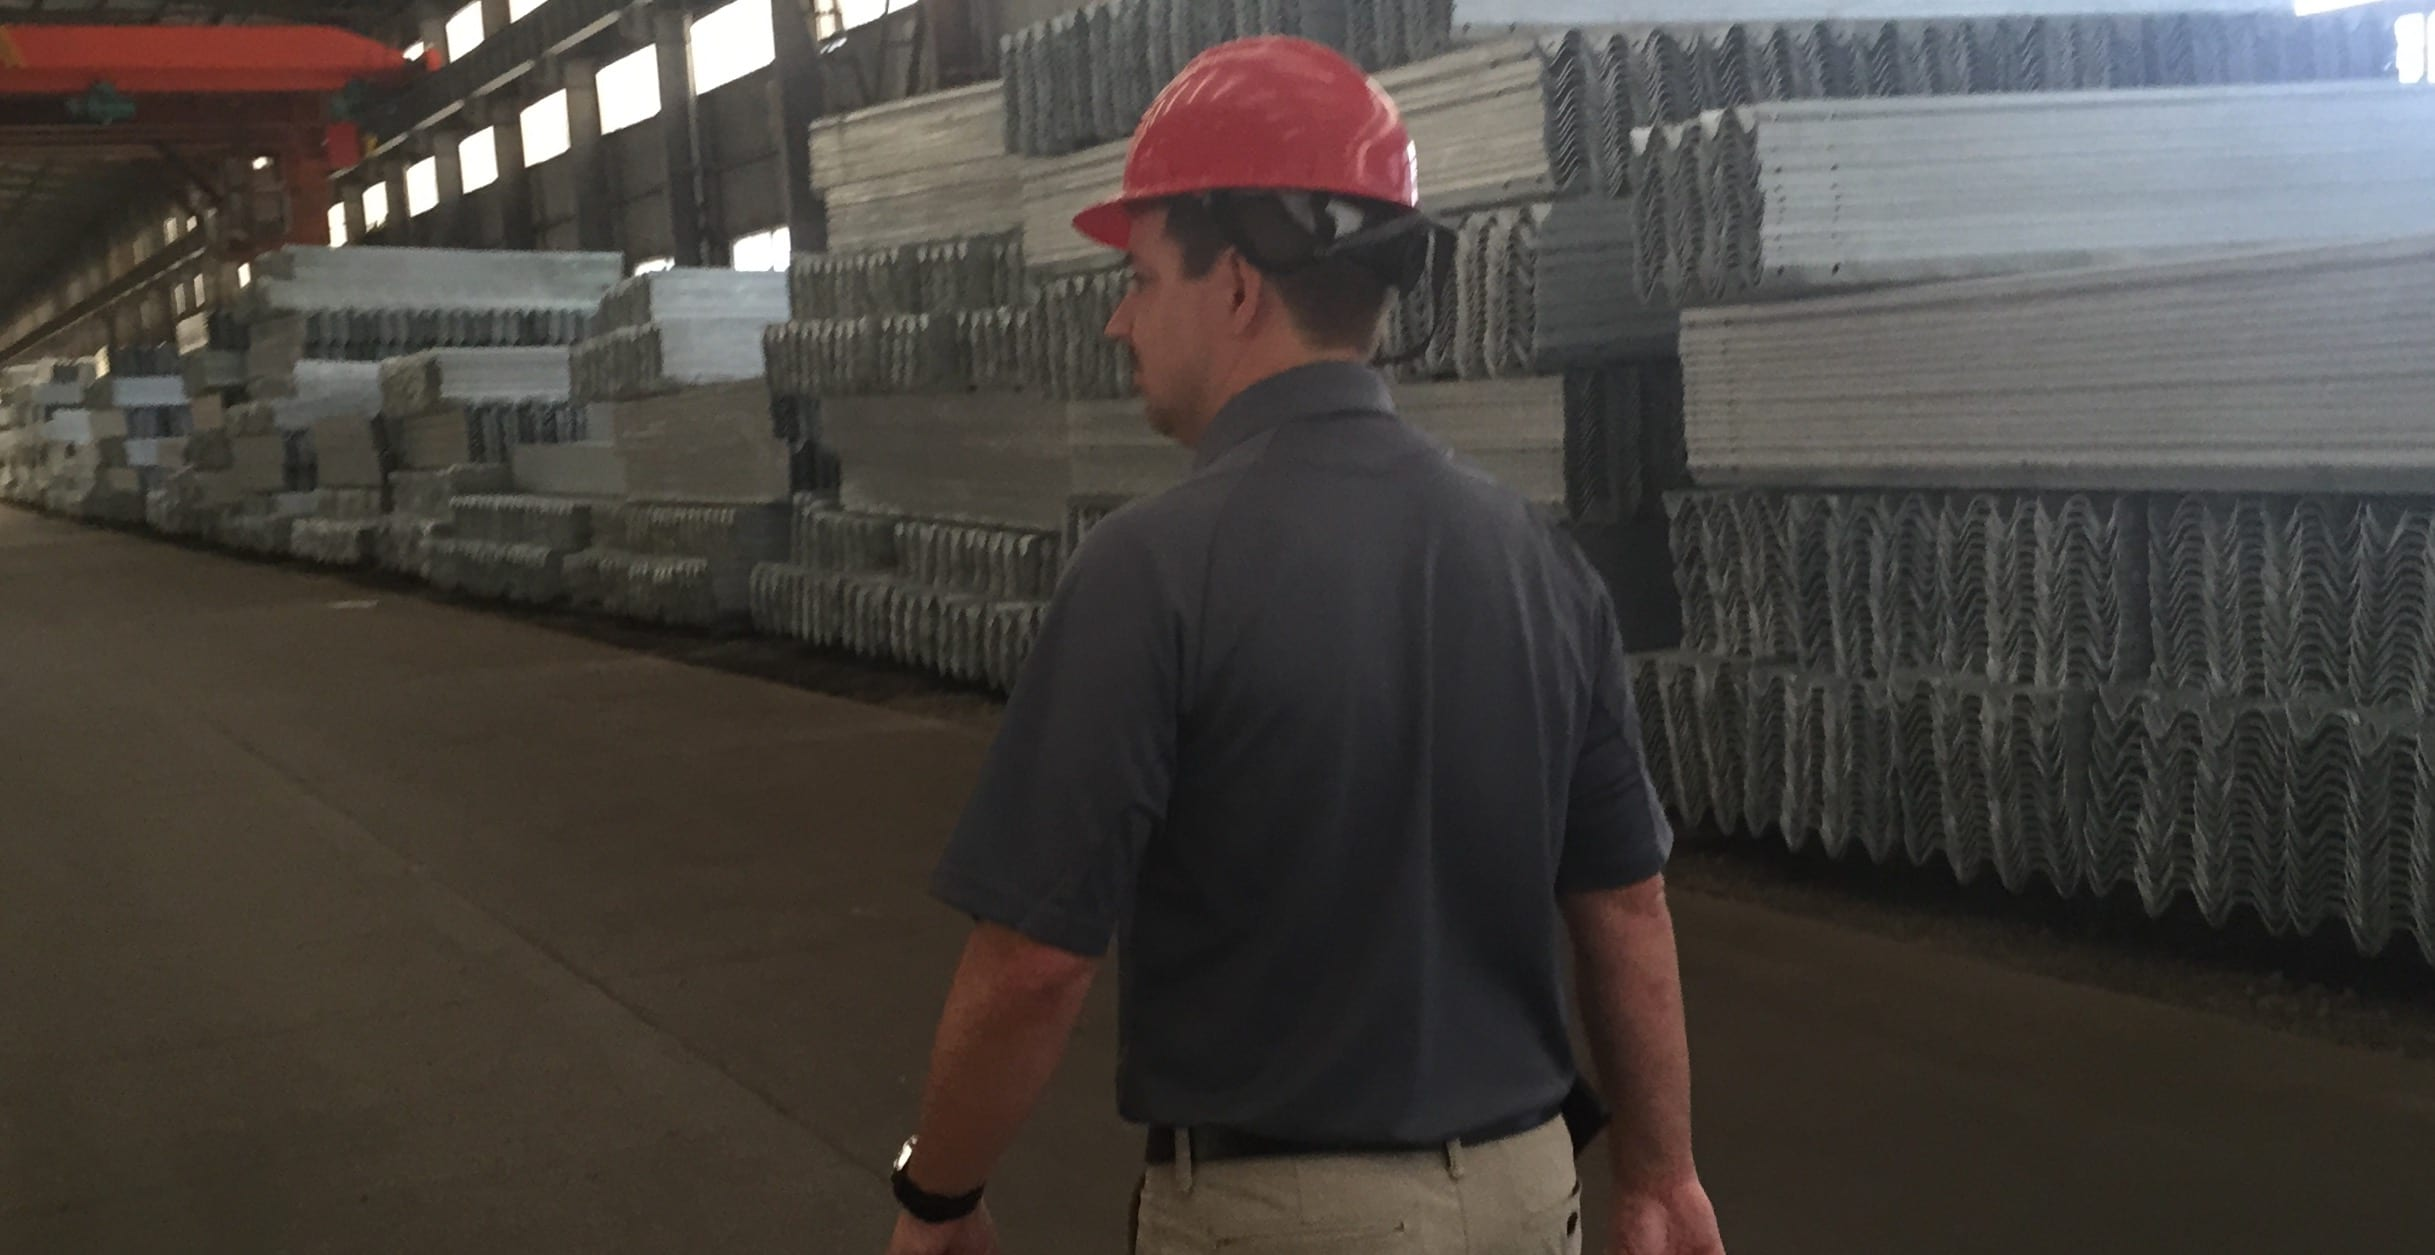 Hundreds of thousands of feet of highway guardrail is making its way to the farm - ready for shipment today